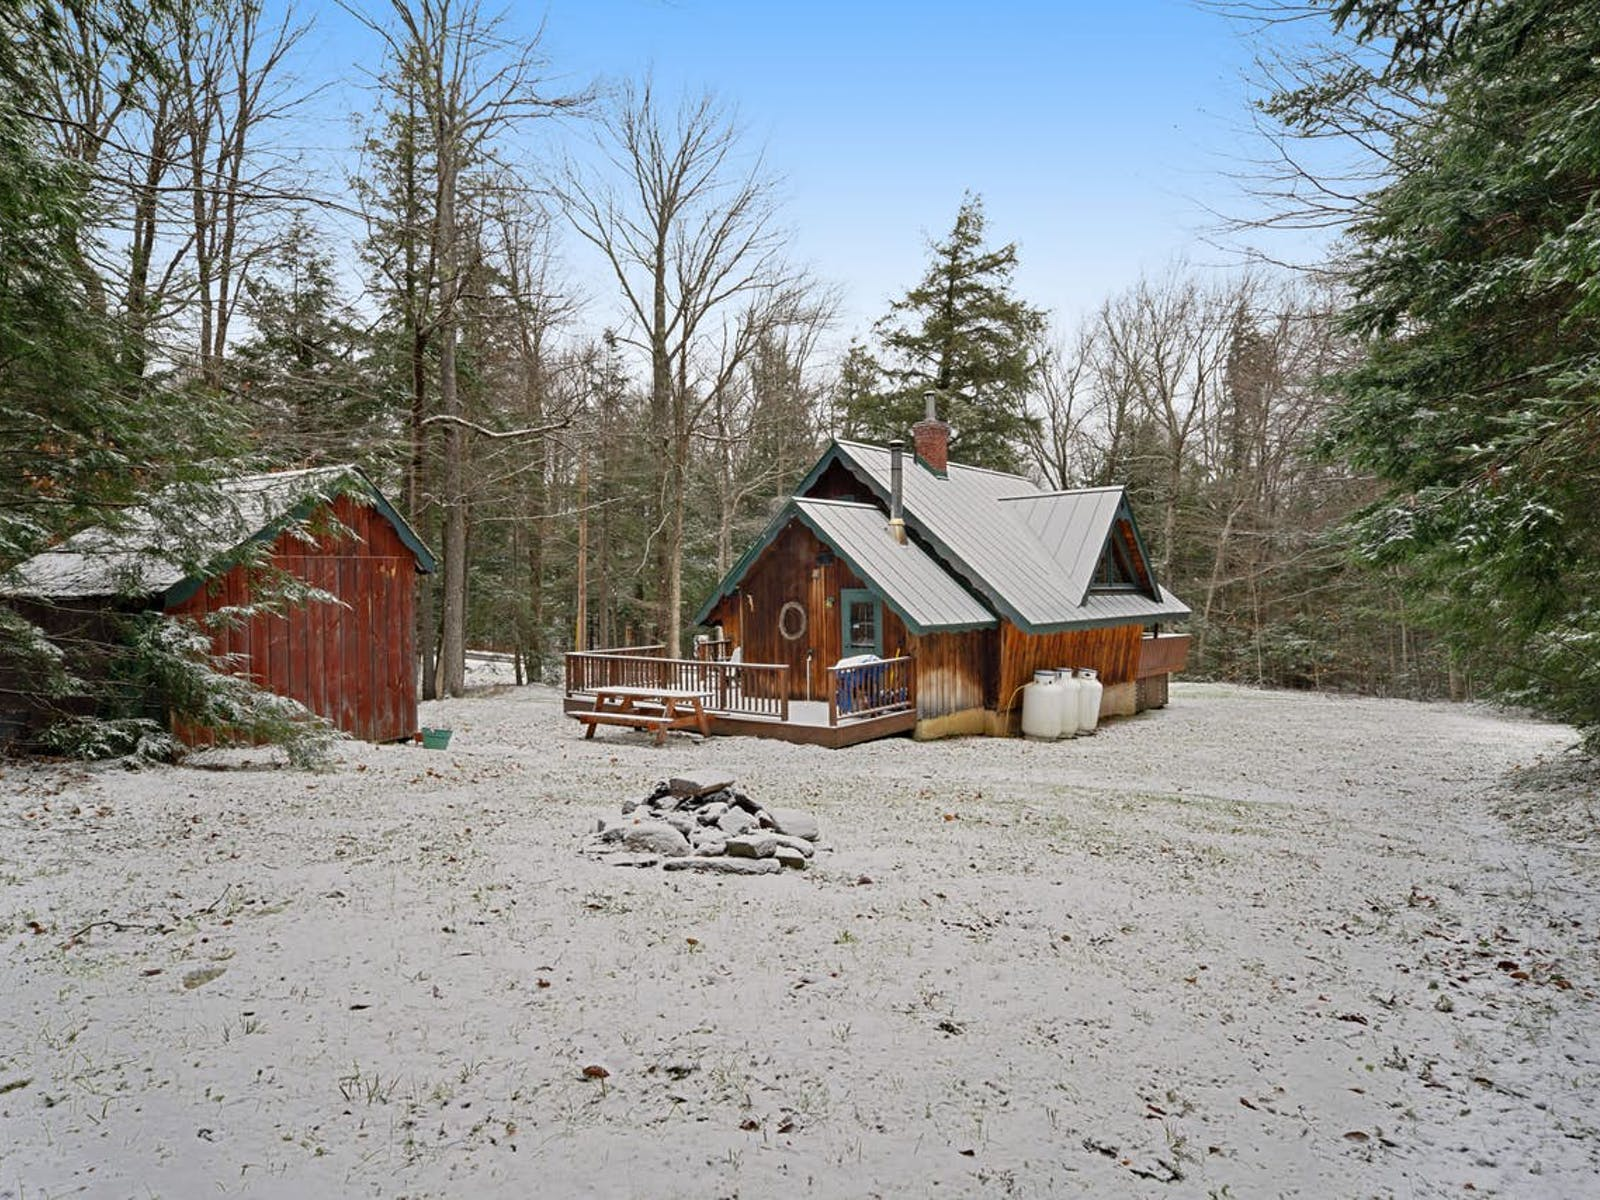 Vermont vacation cabin surrounded by trees and snow